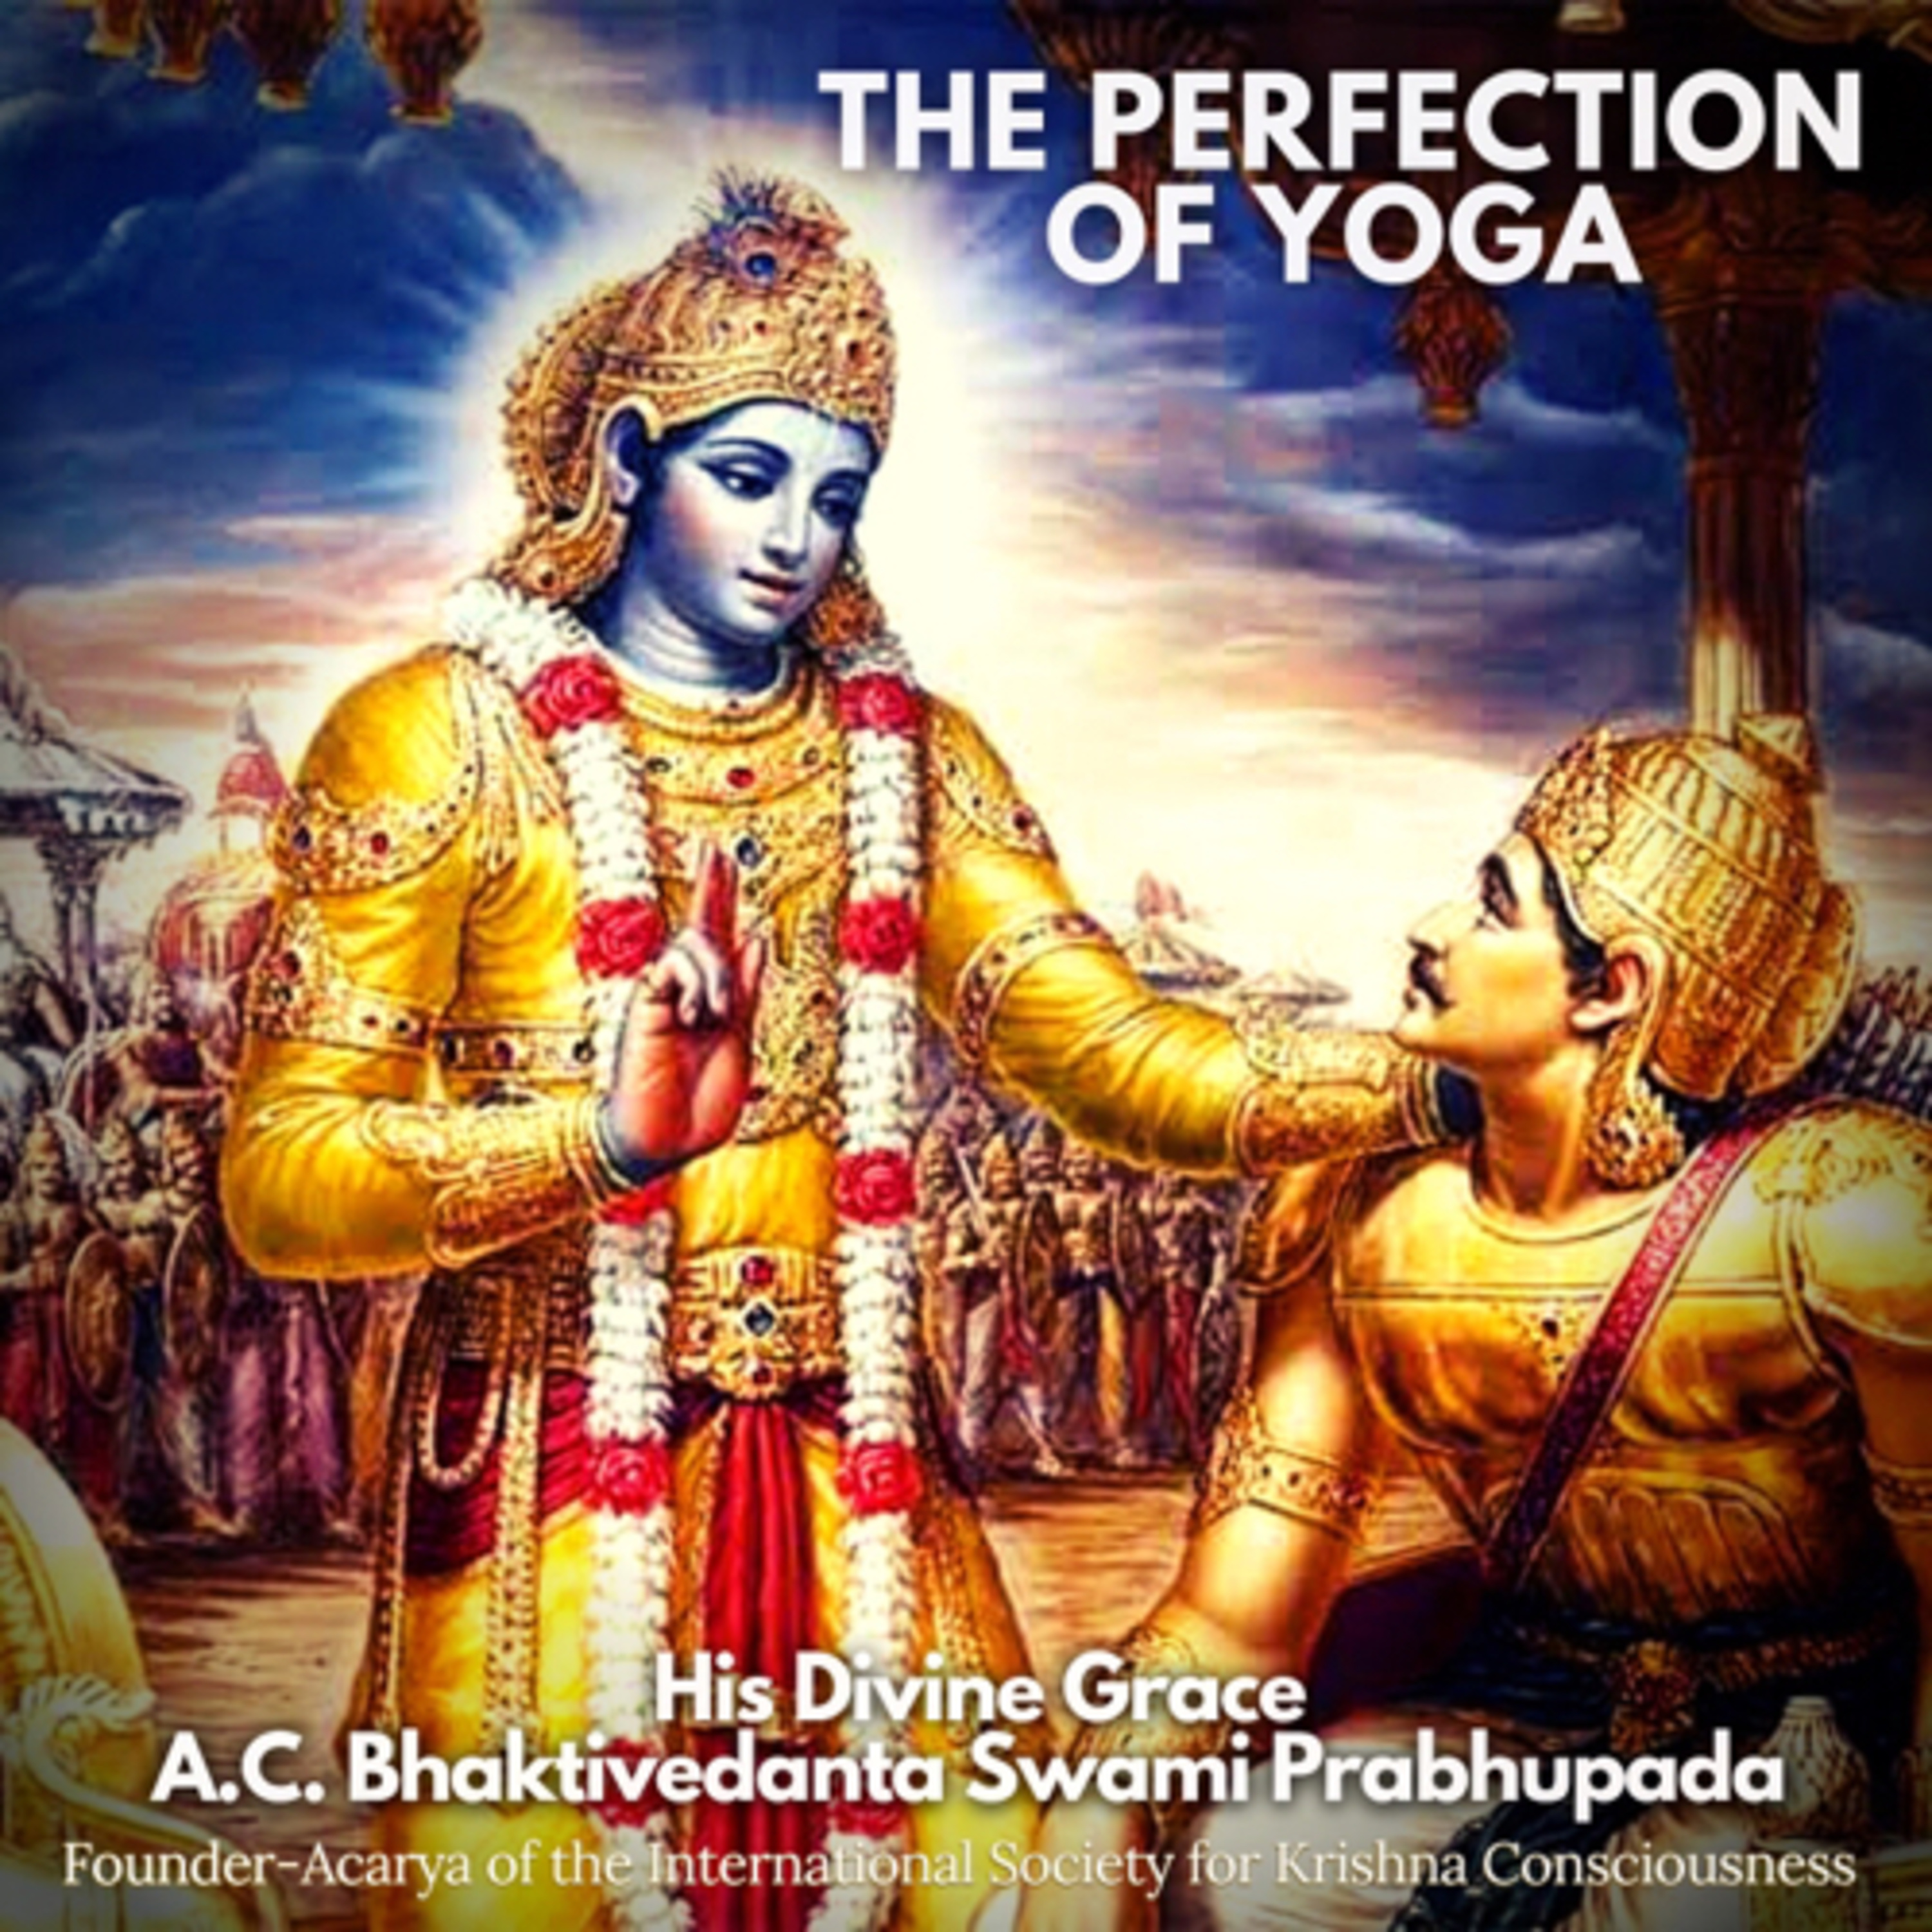 """044 – Frank and Open: Yoga as Rejected by Arjuna (""""Perfection of Yoga"""" pages 1-6)"""